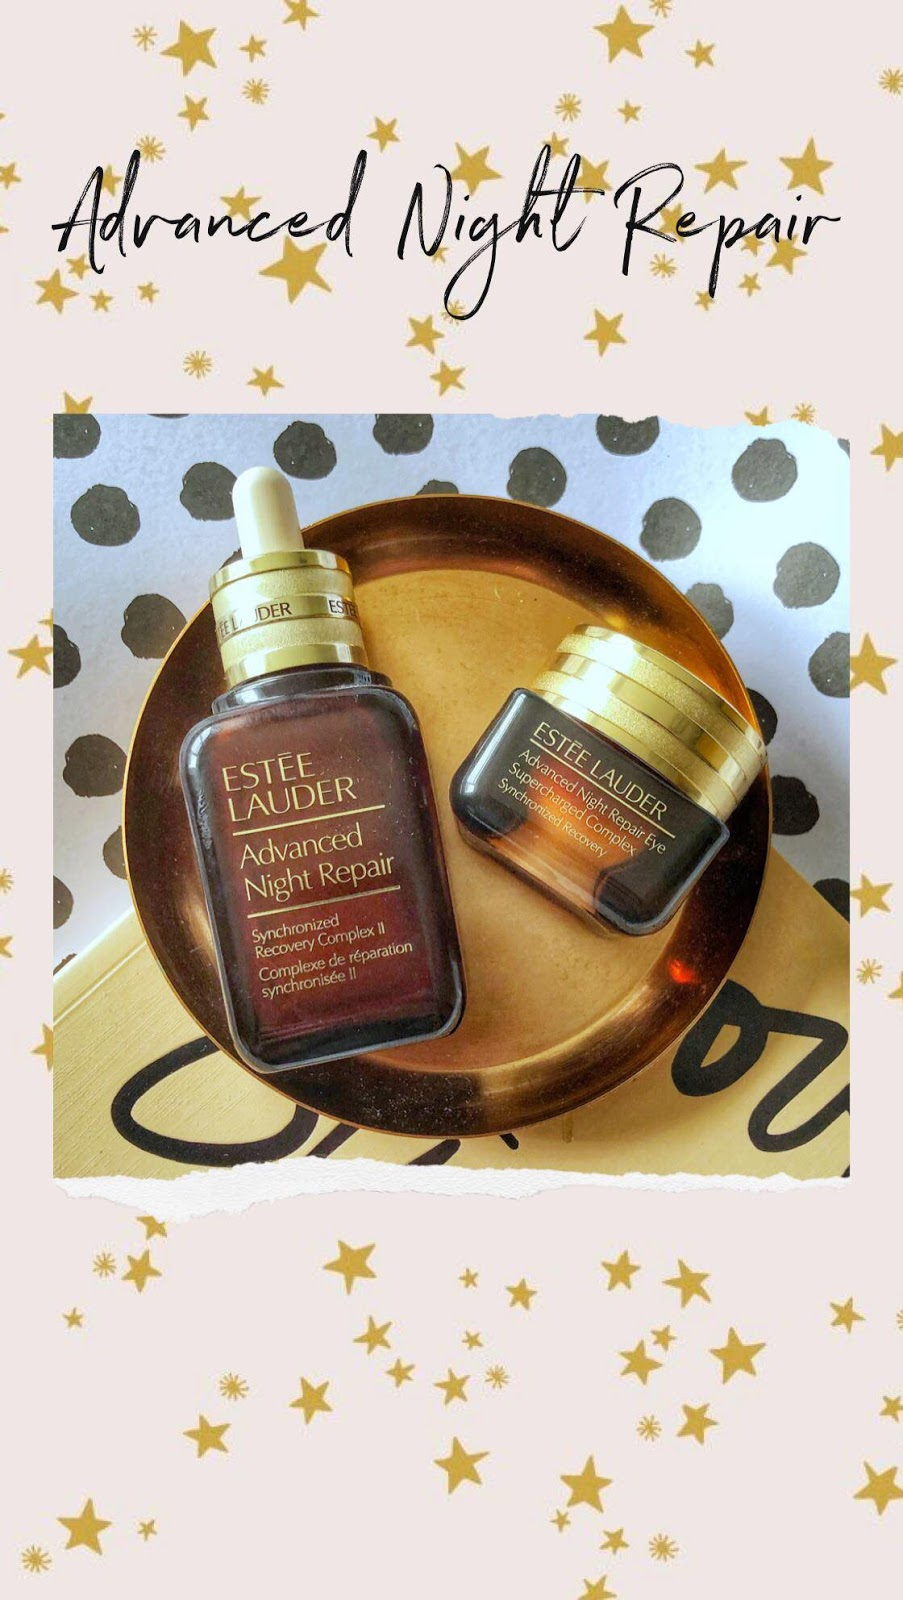 advanced night repair serum review, advanced night repair eye cream review, how to get rid of wrinkles, how to prevent wrinkles, anti agin skincare routine, how old should you be to use anti wrinkle products, origins plantscription review